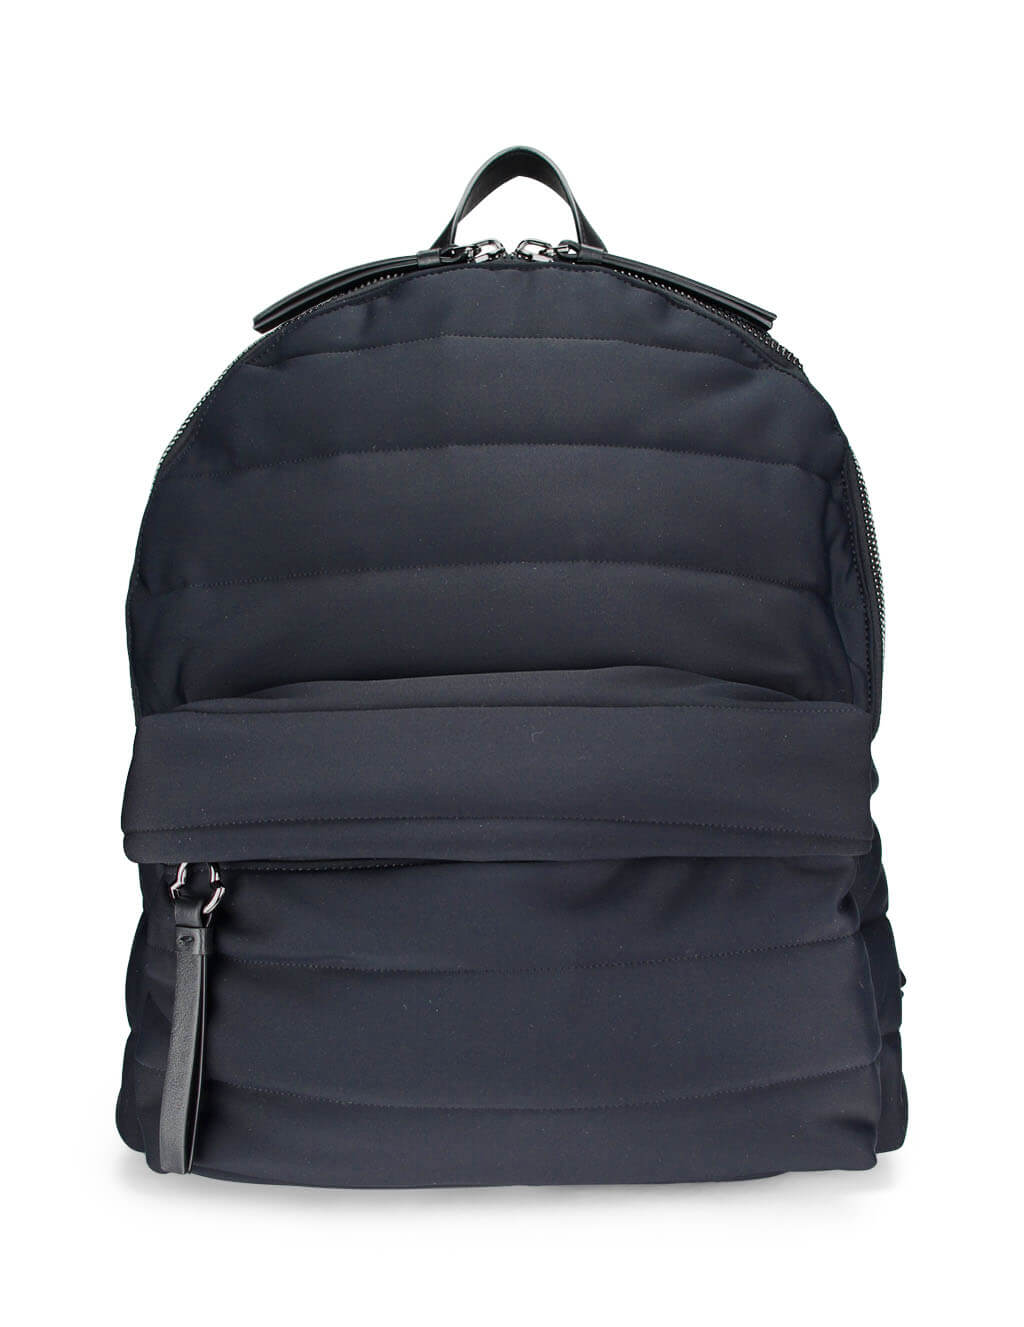 Moncler Men's Giulio Fashion Black Fugi GM Backpack 0062400539AX999